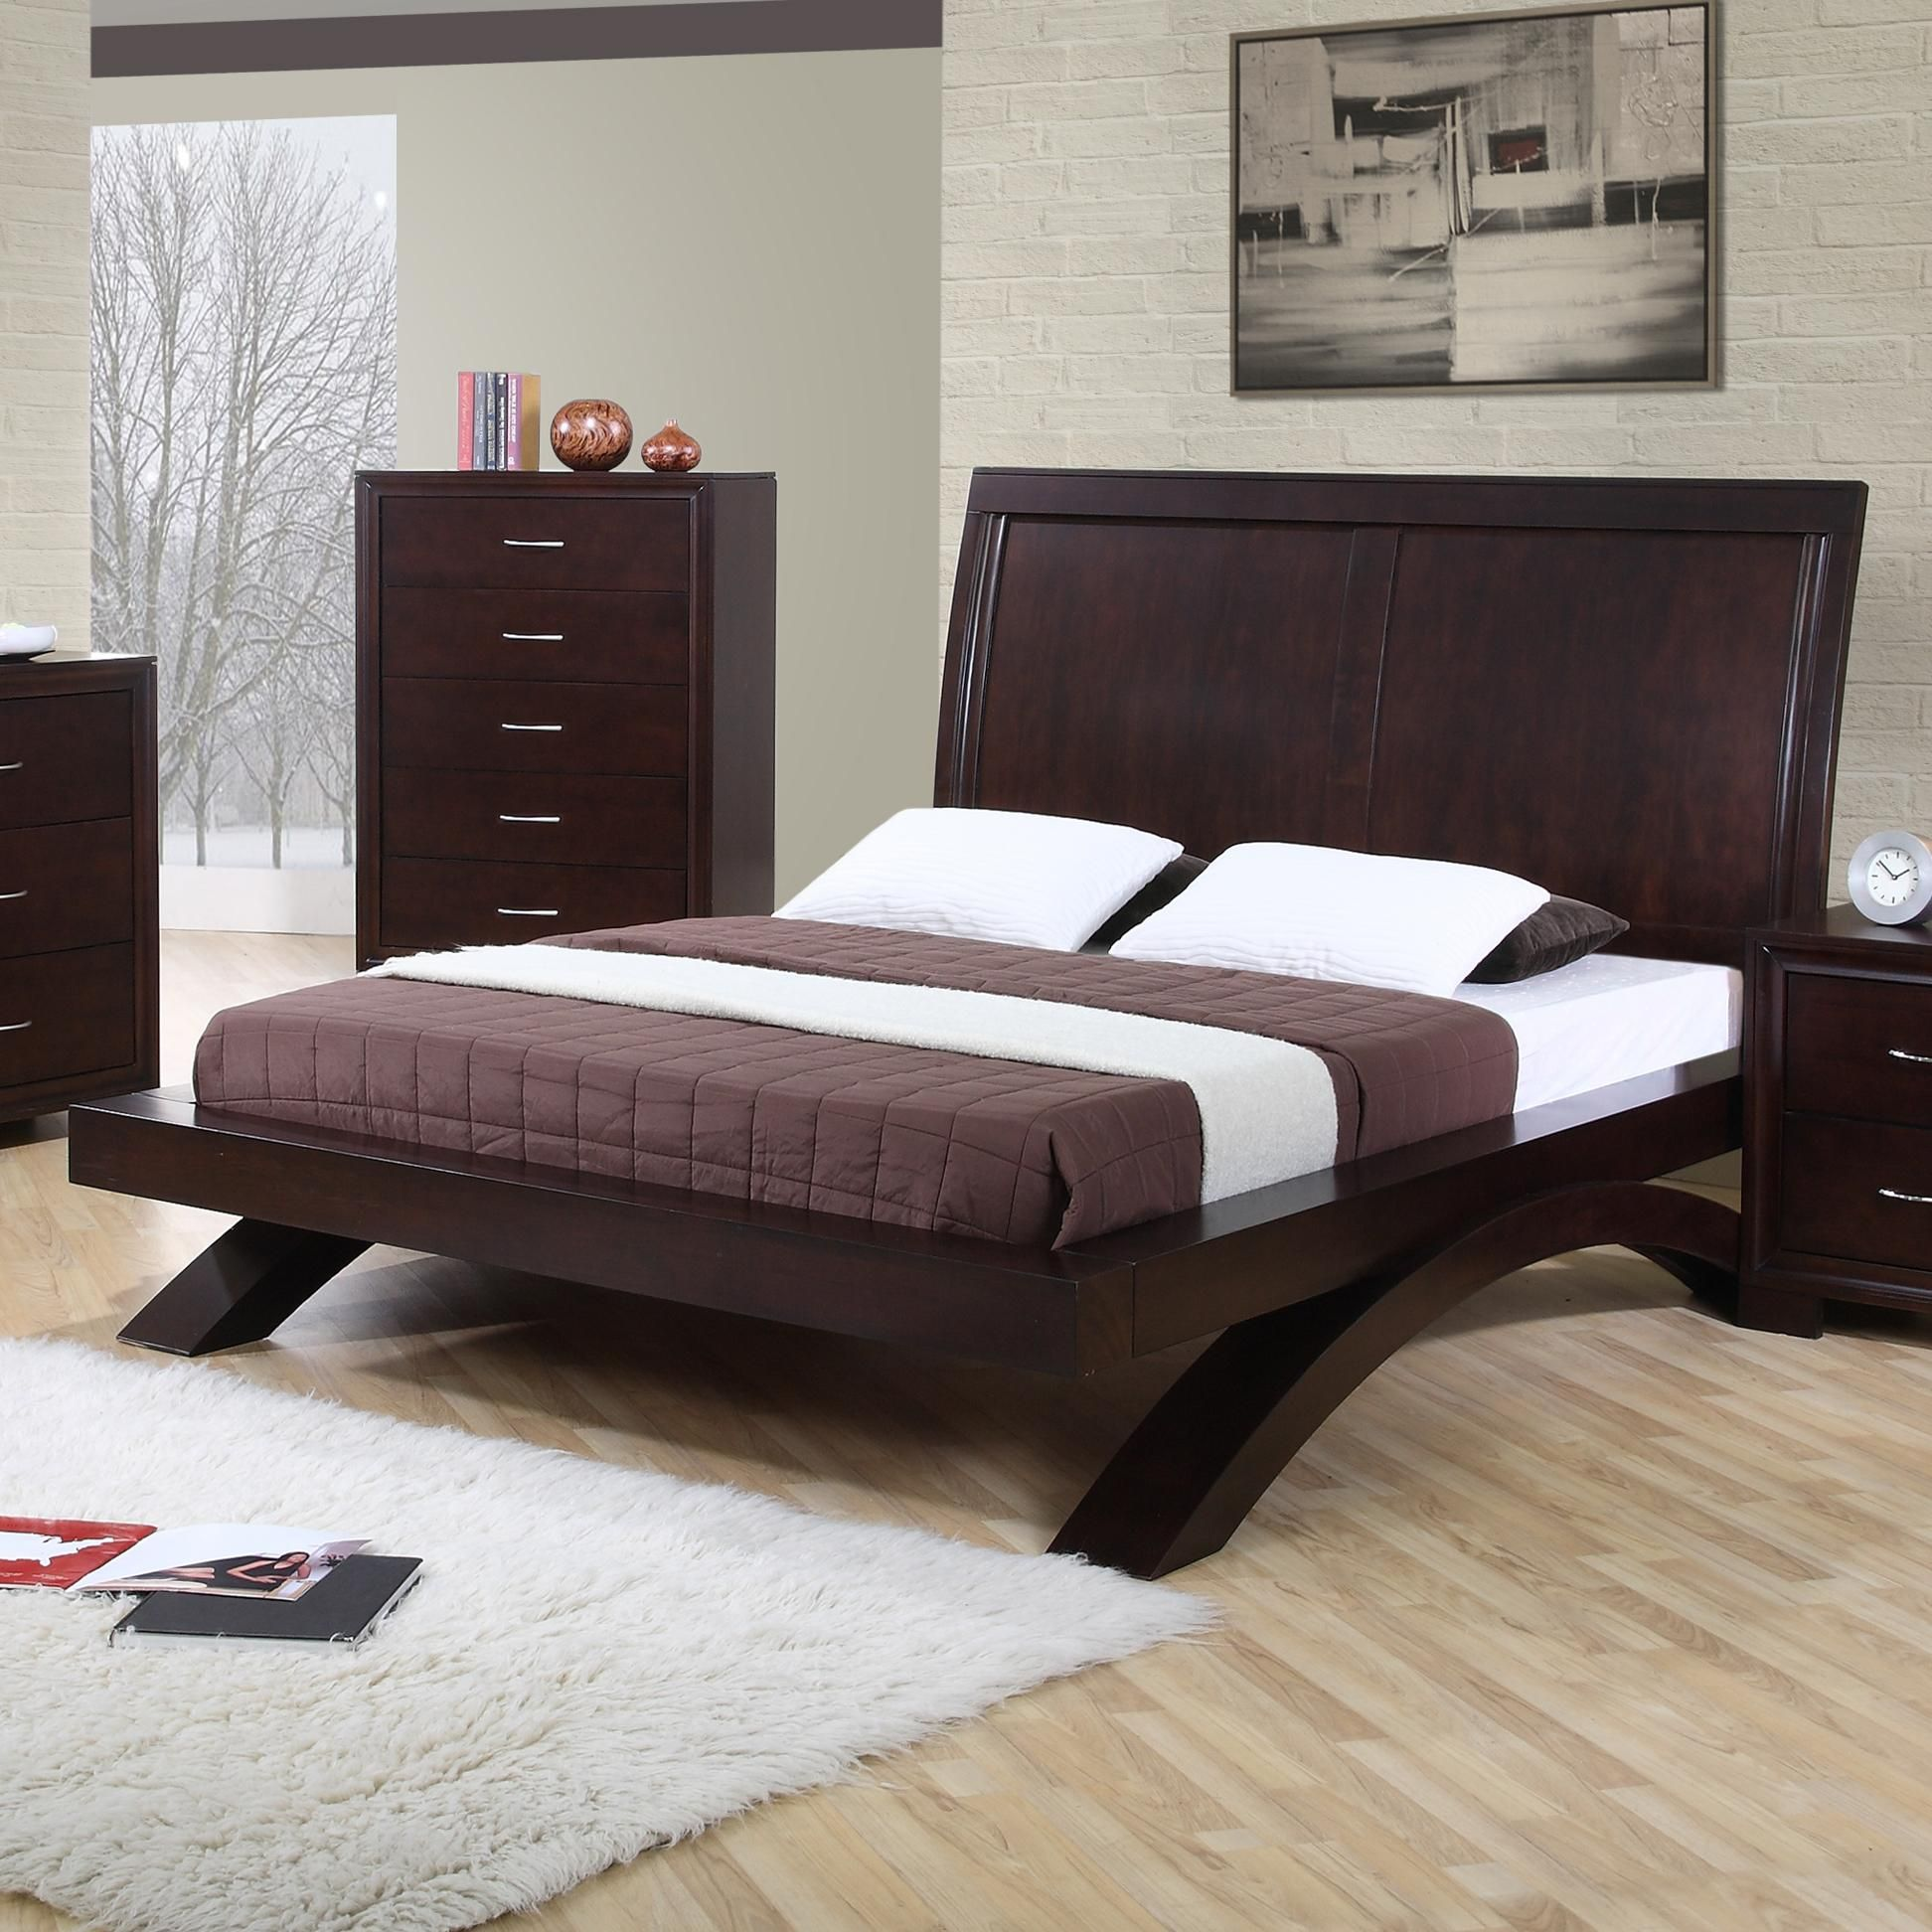 raven king contemporary platform bed by elements international bedroom ideas bedroom sets. Black Bedroom Furniture Sets. Home Design Ideas